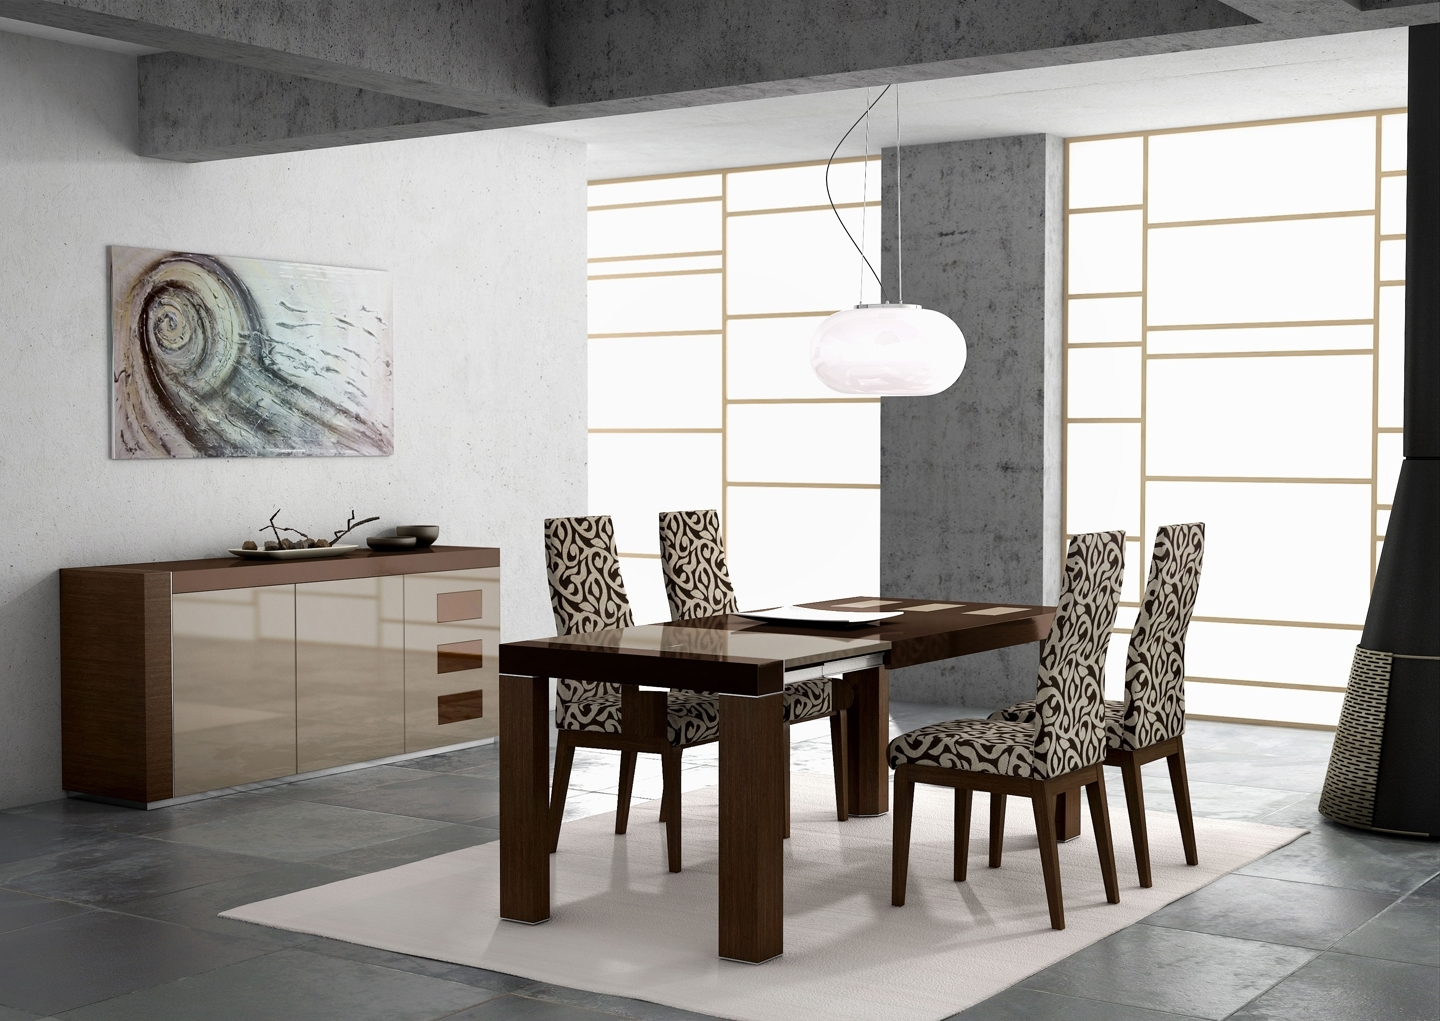 Photos: Irene Table Ada Chairs Lacquered Modern Dining Sets In Favorite Cream Lacquer Dining Tables (View 13 of 25)